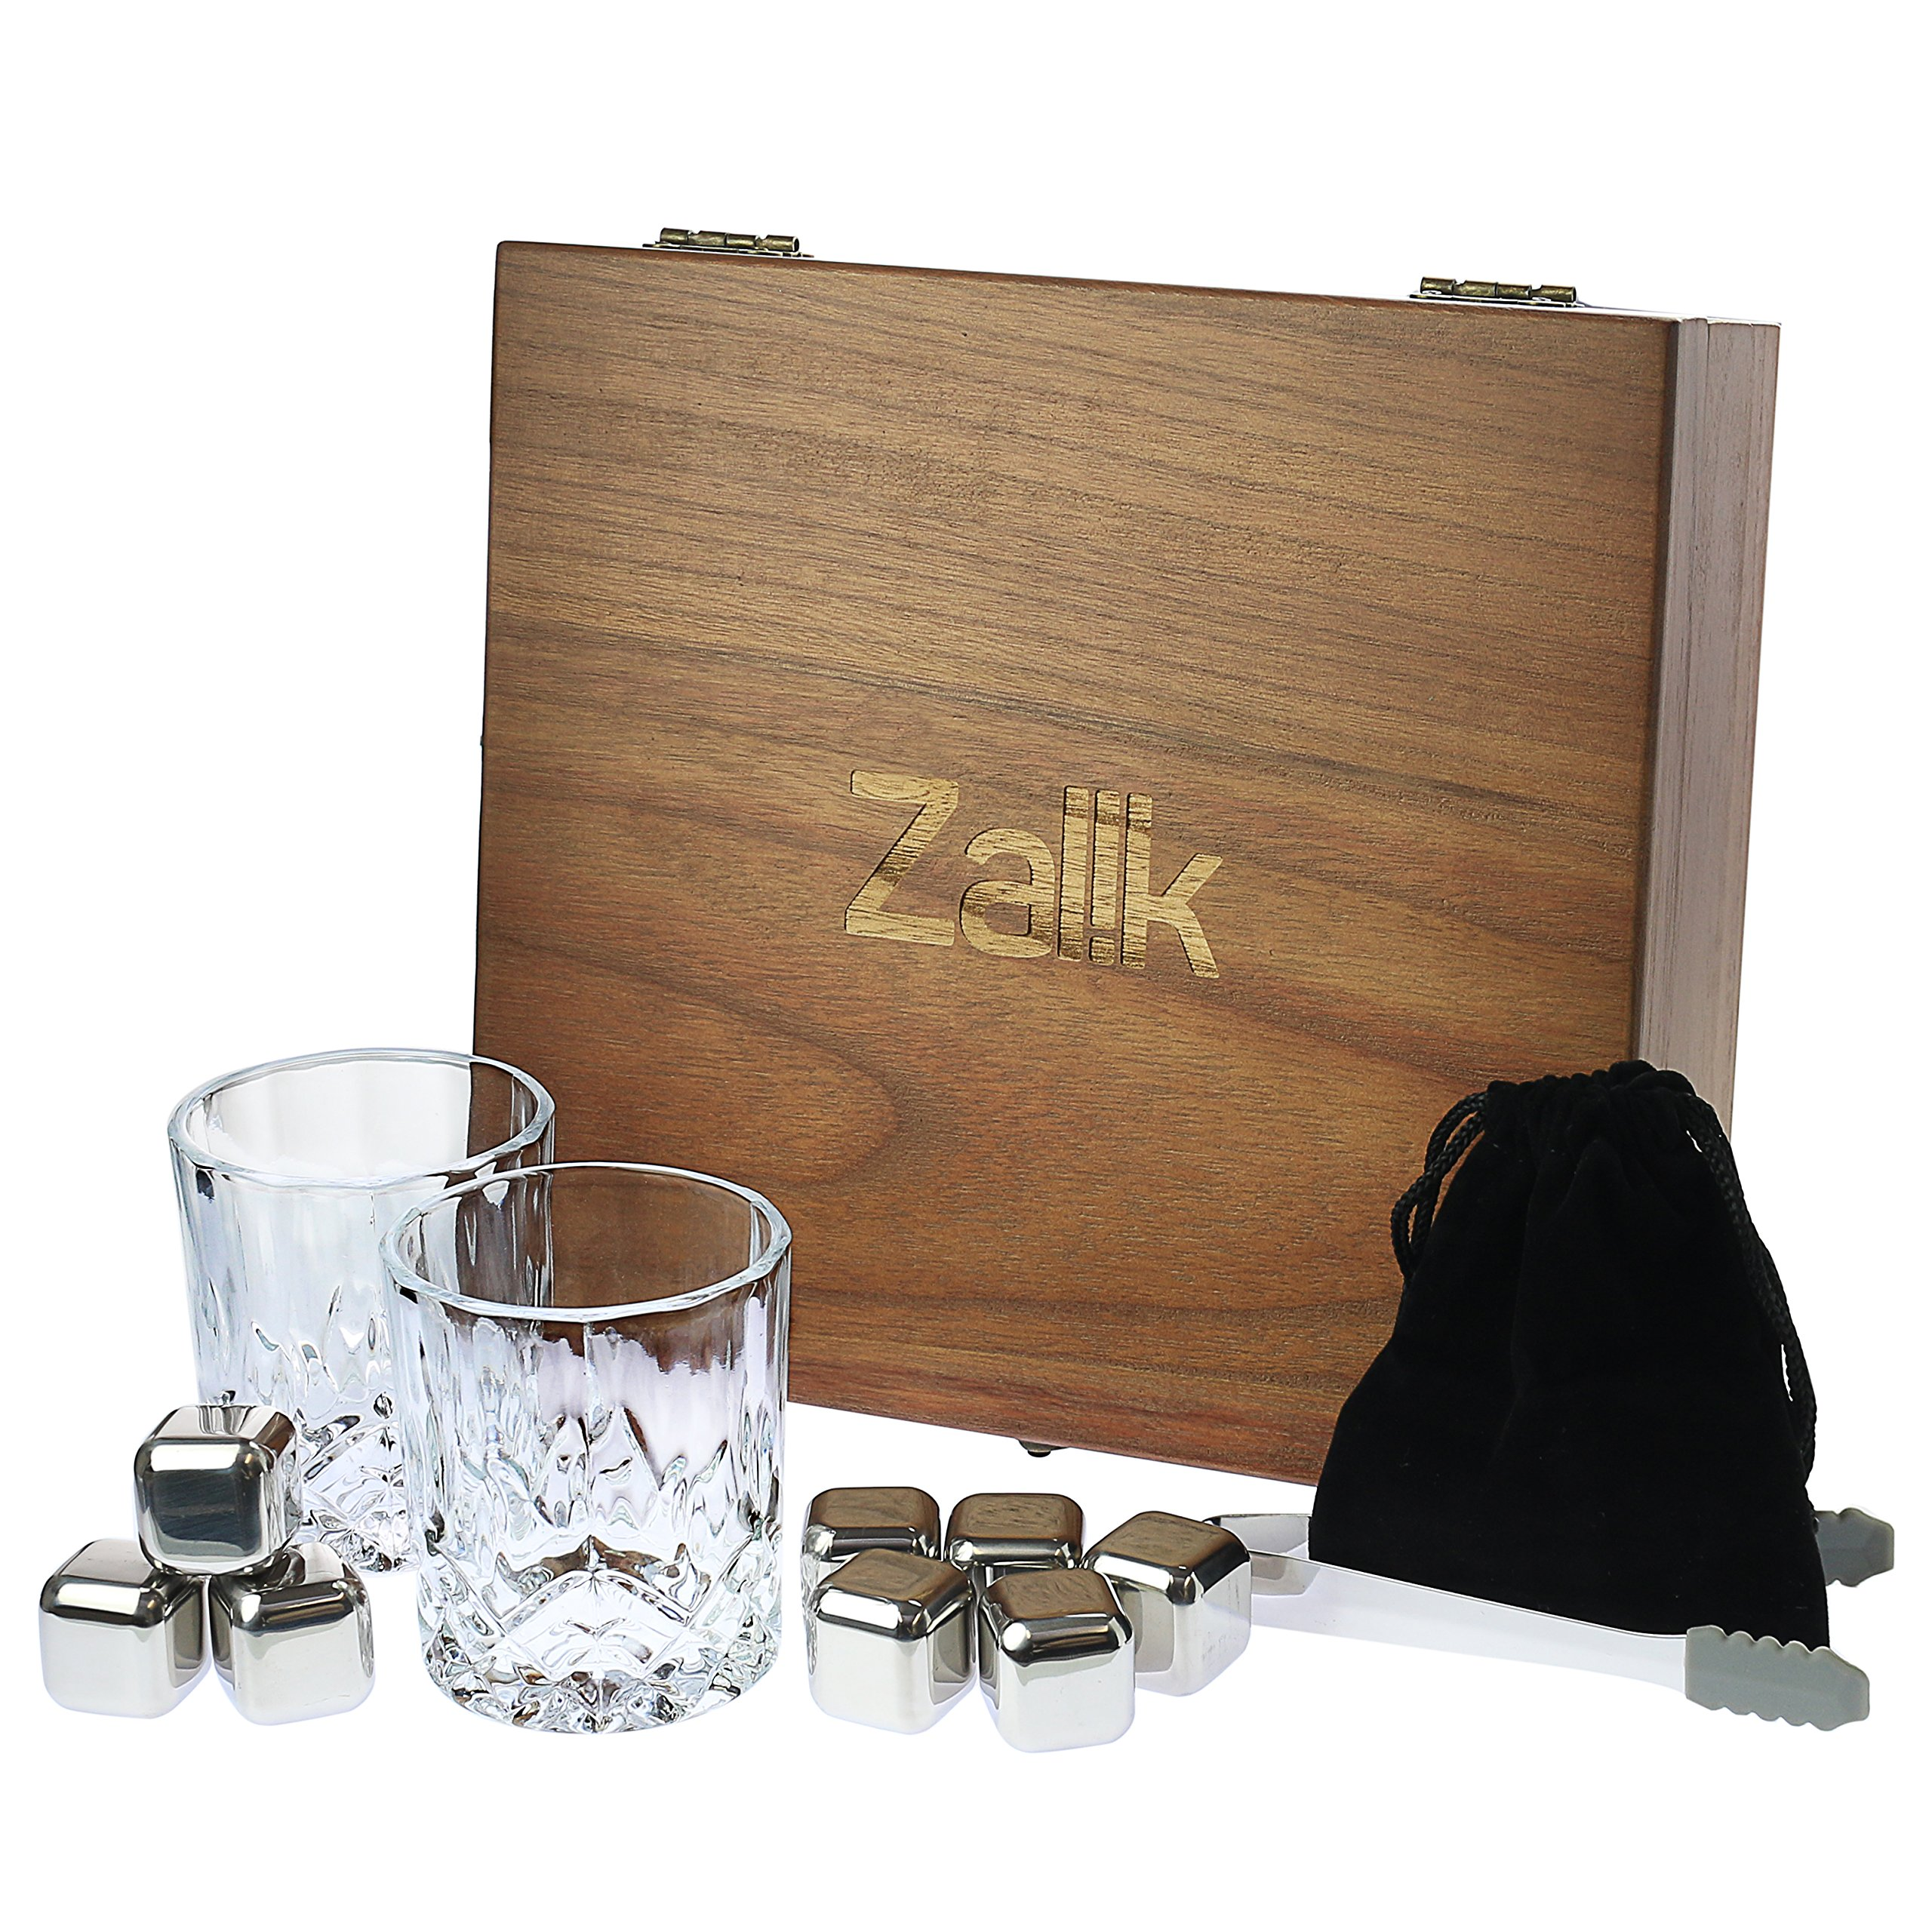 Zalik Whiskey Stones Gift Set – Set Of 8 Stainless Steel Beverage Chilling Rocks Ice Cubes Includes 2 Whiskey Glasses, Velvet Bag, Tongs With Elegant Wooden Gift Box - For Whiskey, Vodka, Liqueurs